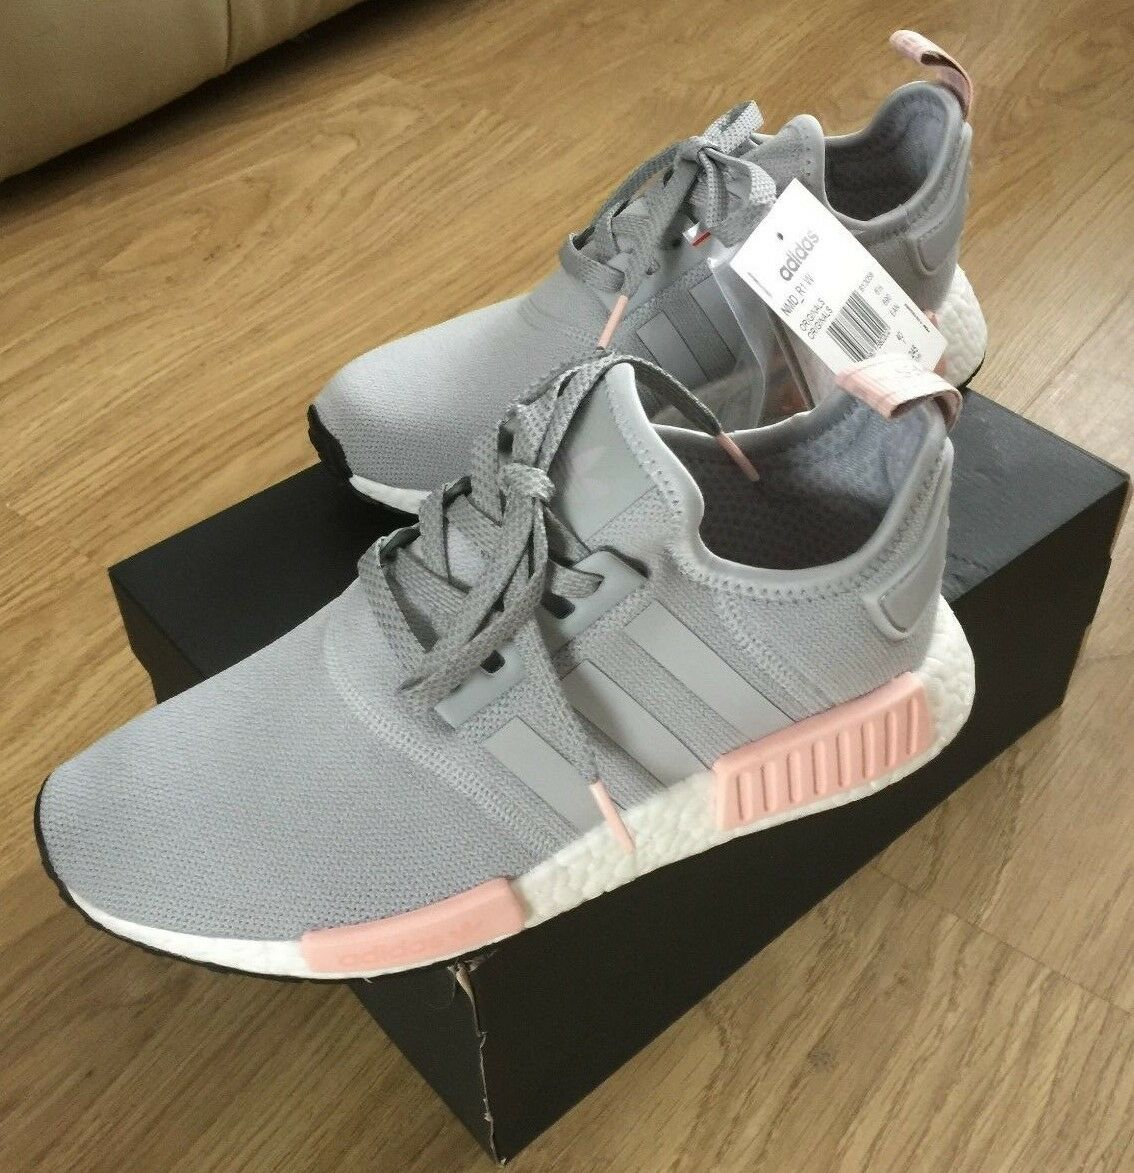 ADIDAS ORIGINALS NMD_R1 RUNNER GREY PINK BY3058 LIMITED STOCK. SIZE